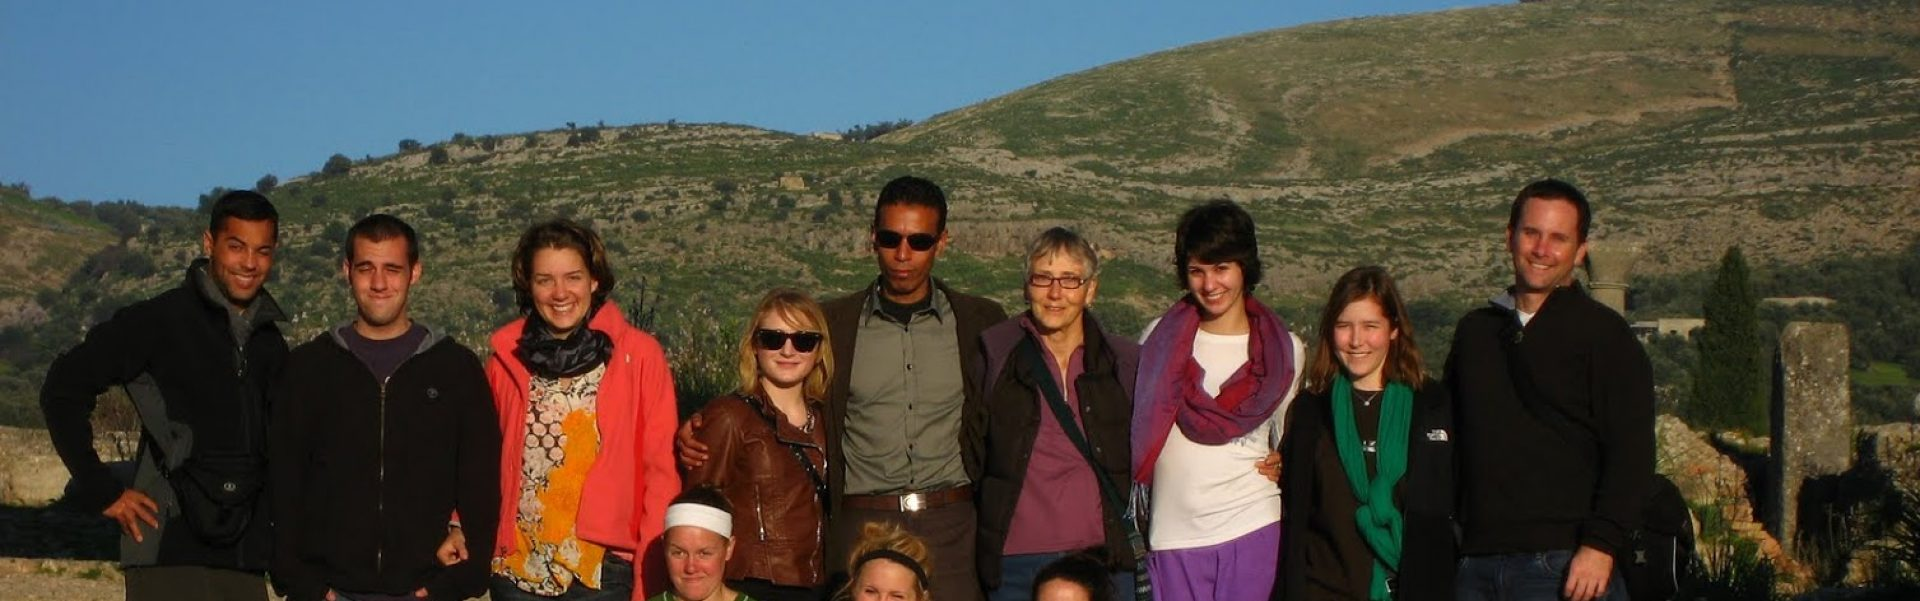 Whittier College Faculty-Led Study Trips